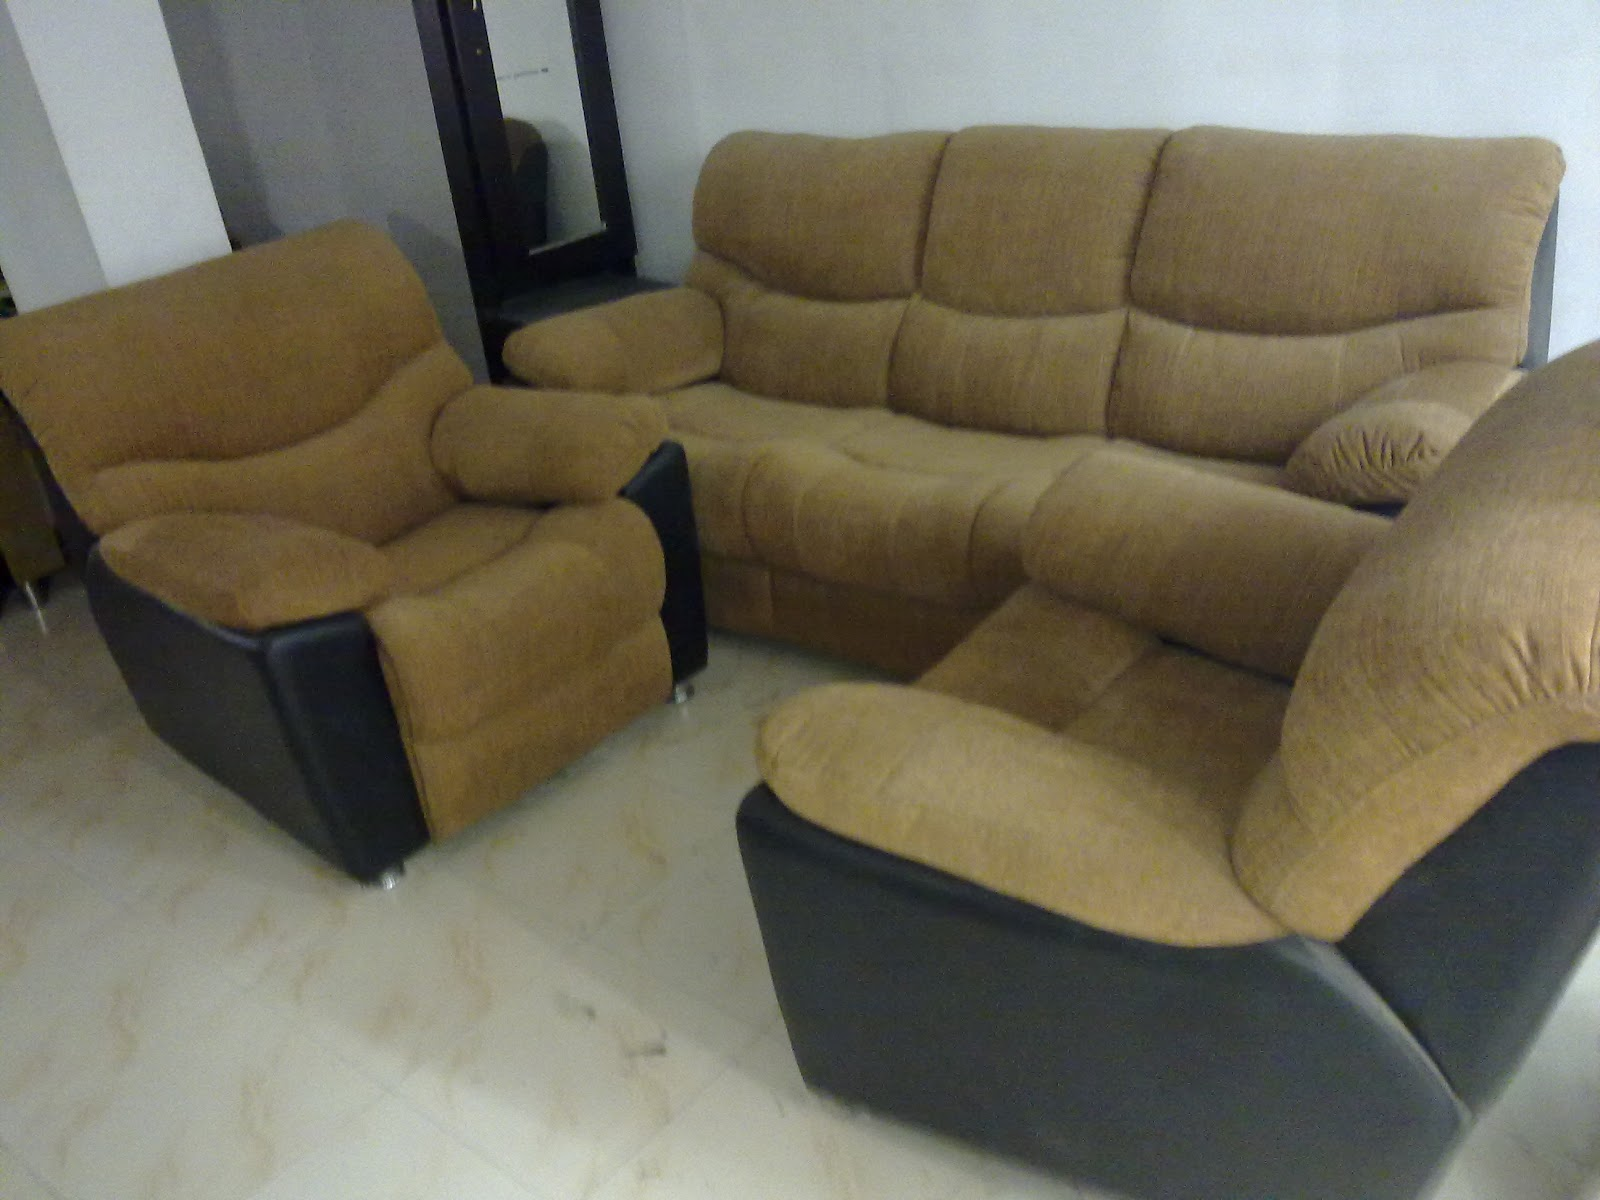 Union Furniture In Hyderabad Secunderabad Sofa Sets